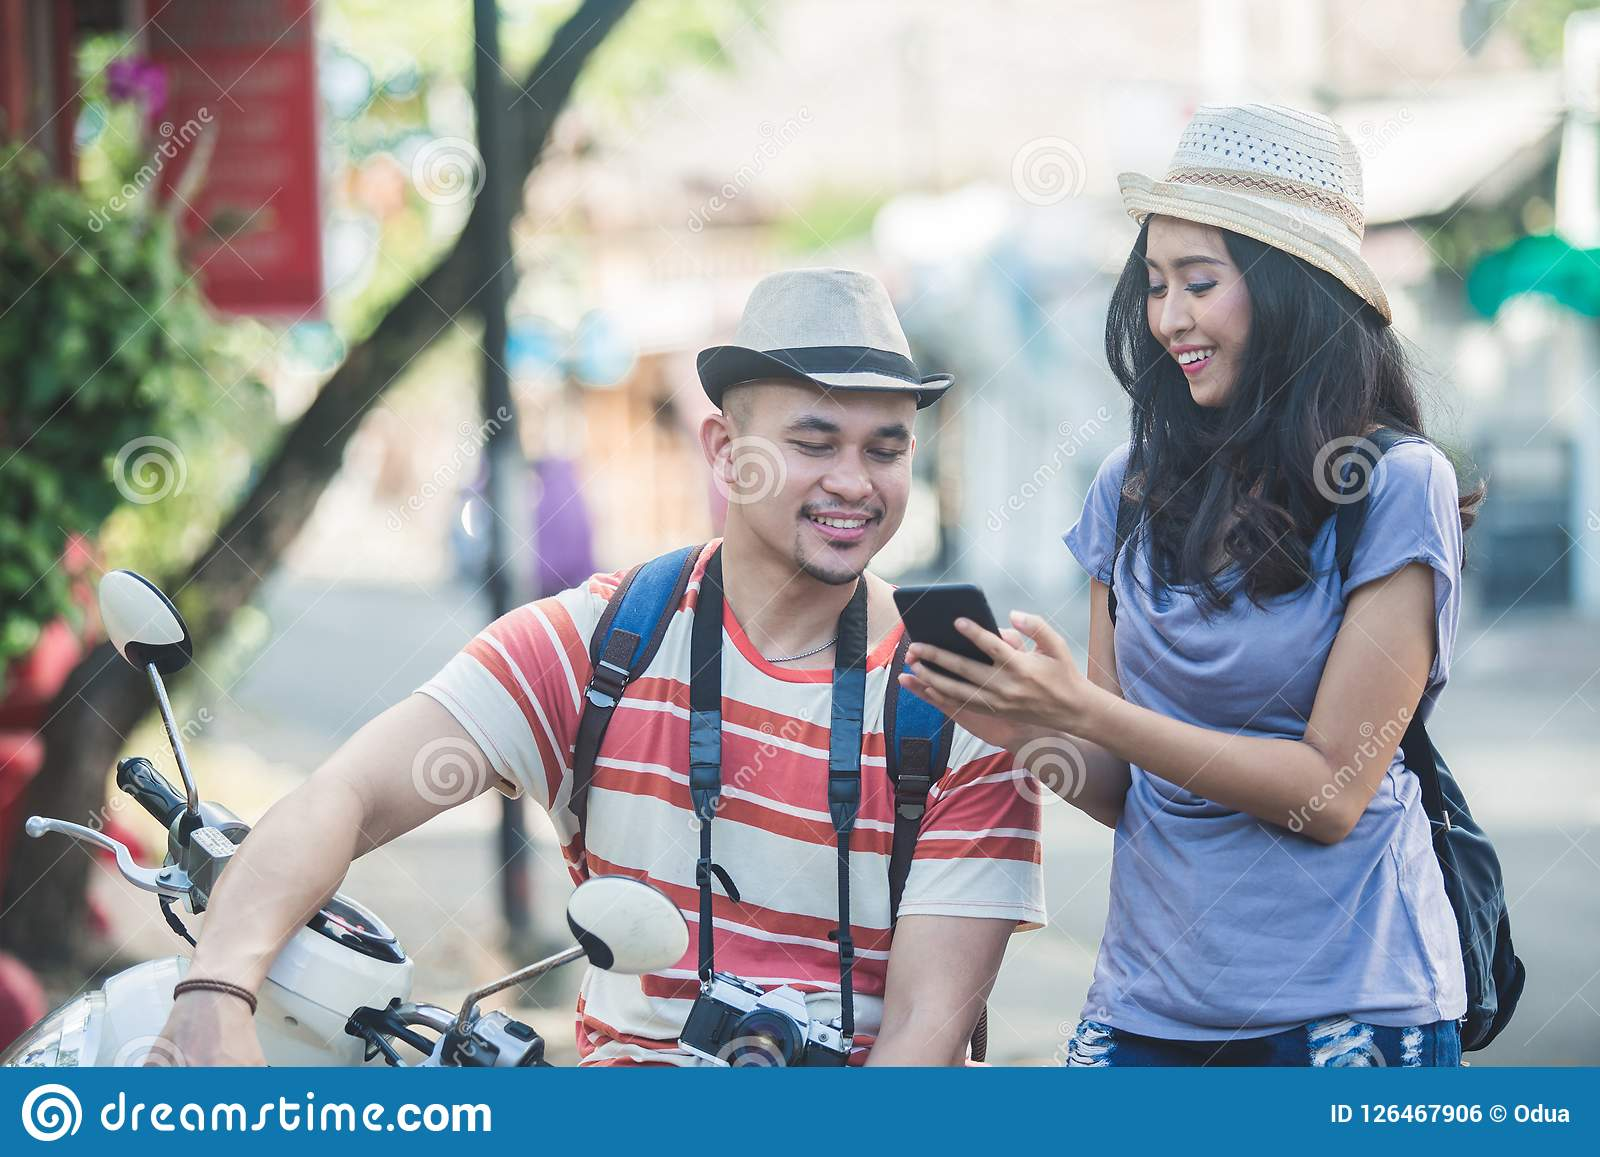 Two backpackers with summer hat seeing the result of their photo